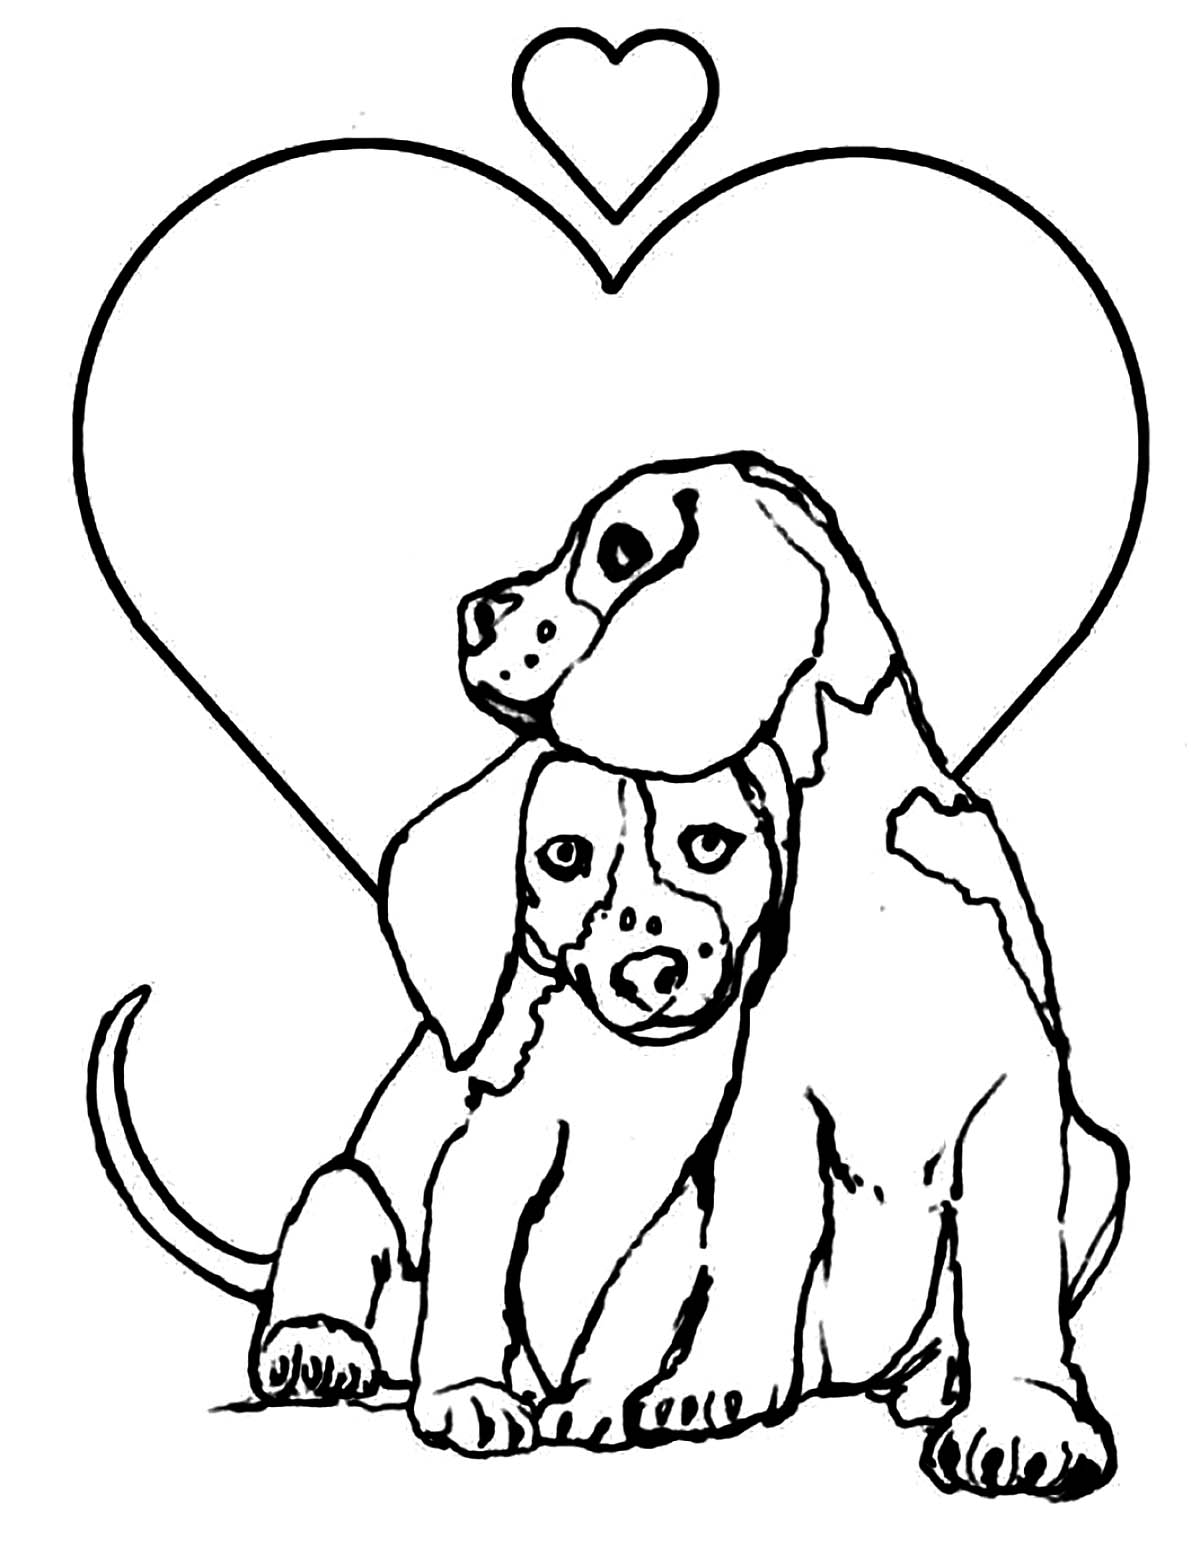 Dog for children : loving dogs - Dogs Kids Coloring Pages